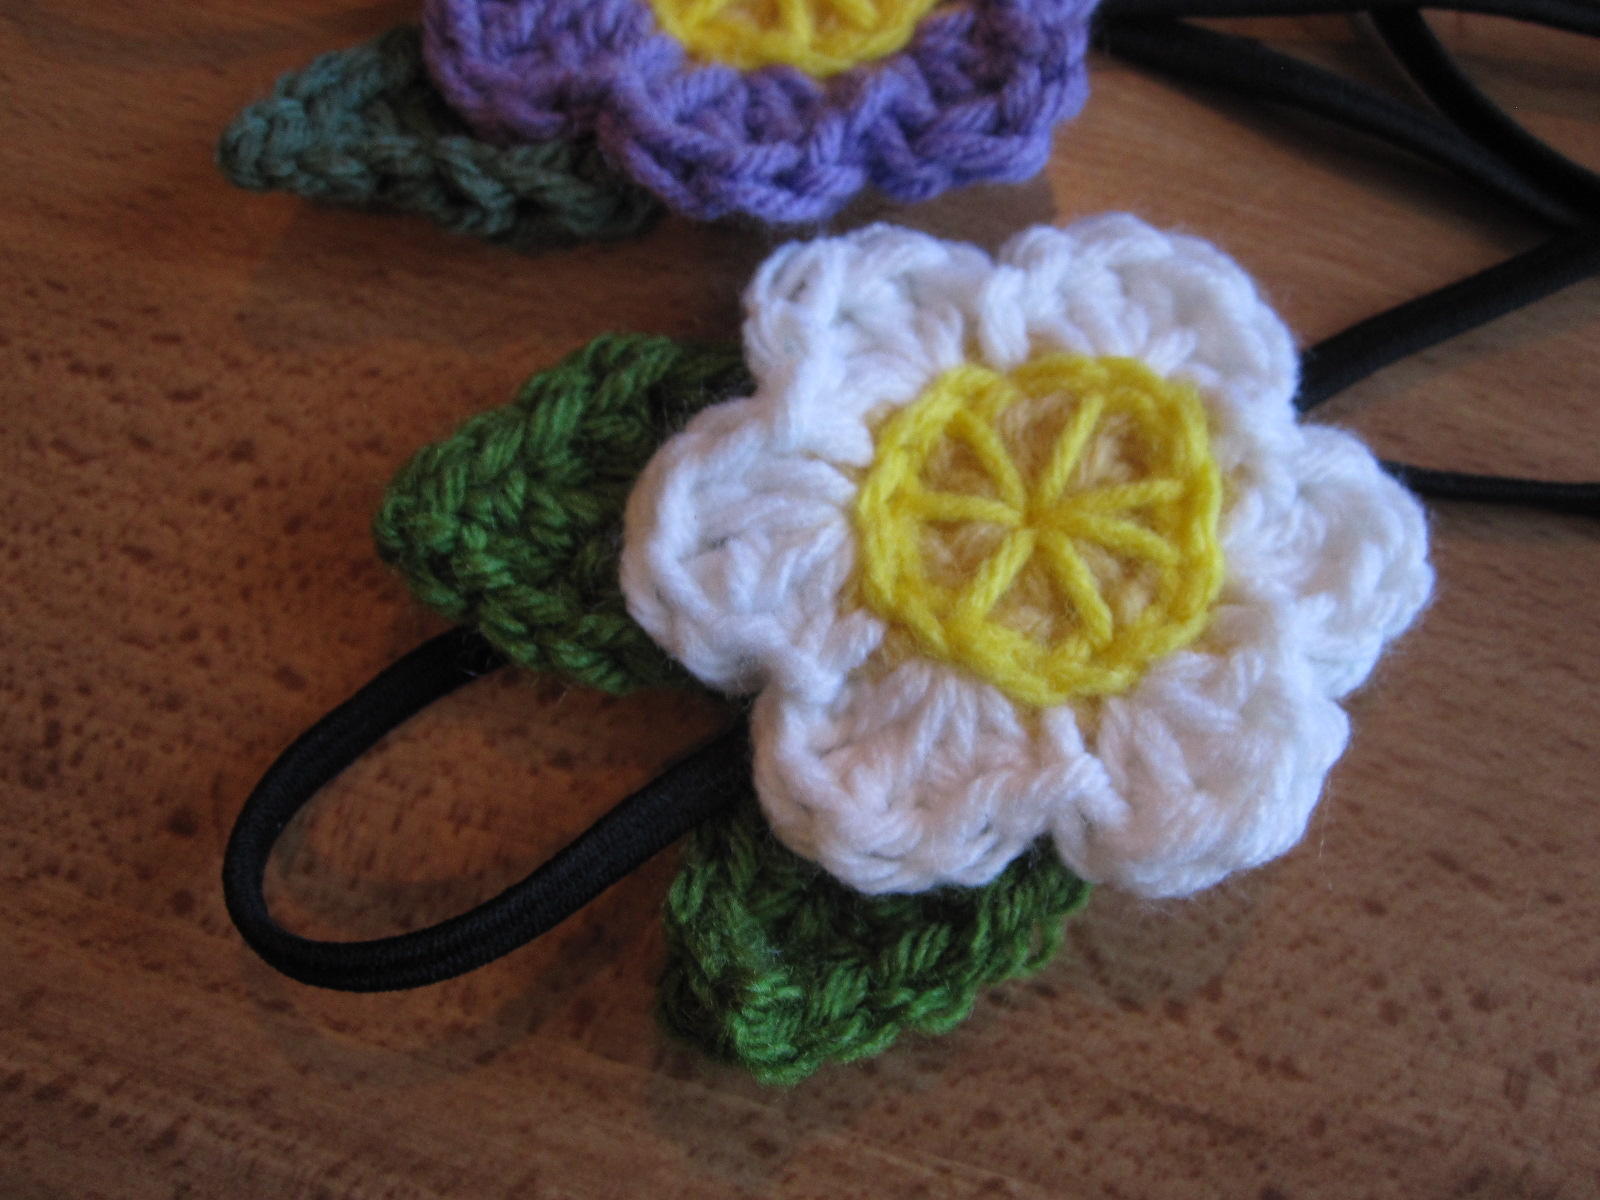 Crochet Tutorial Headband : Lively Crochet - Rhythmic Youth: Crochet Bow Headband Tutorial